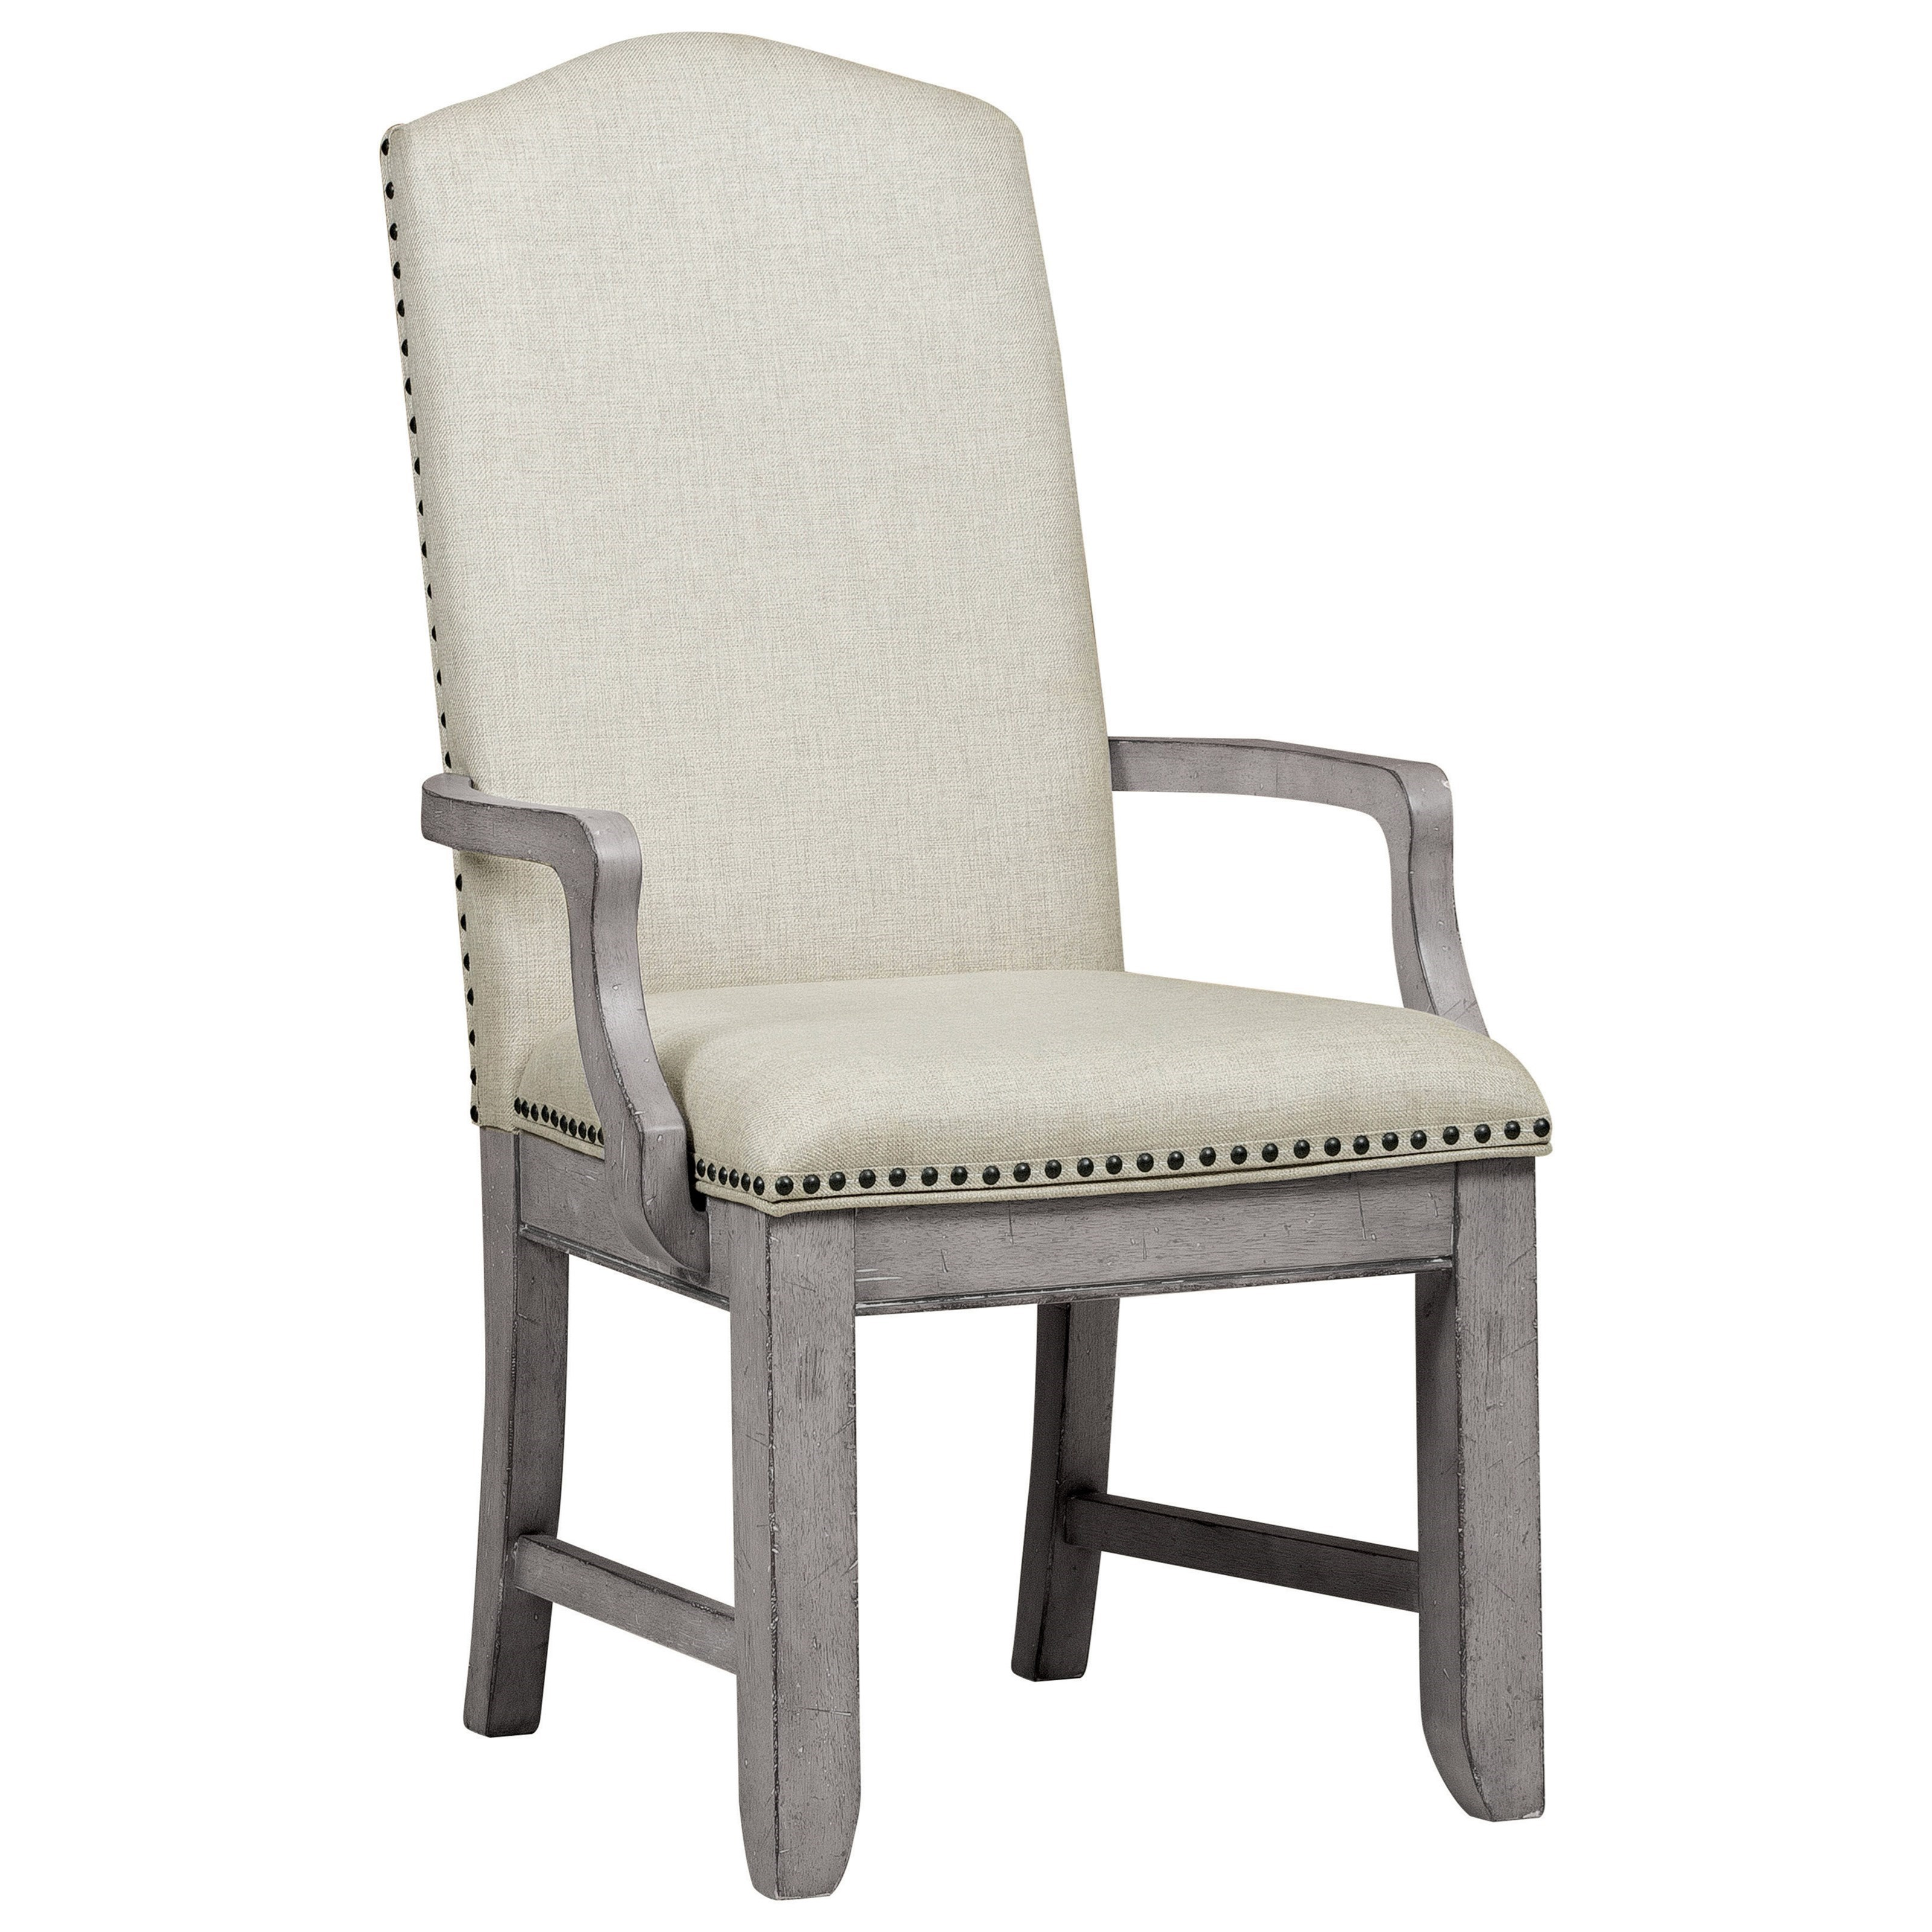 Samuel Lawrence Prospect Hill Upholstered Arm Chair With Nail Head Trim Miskelly Furniture